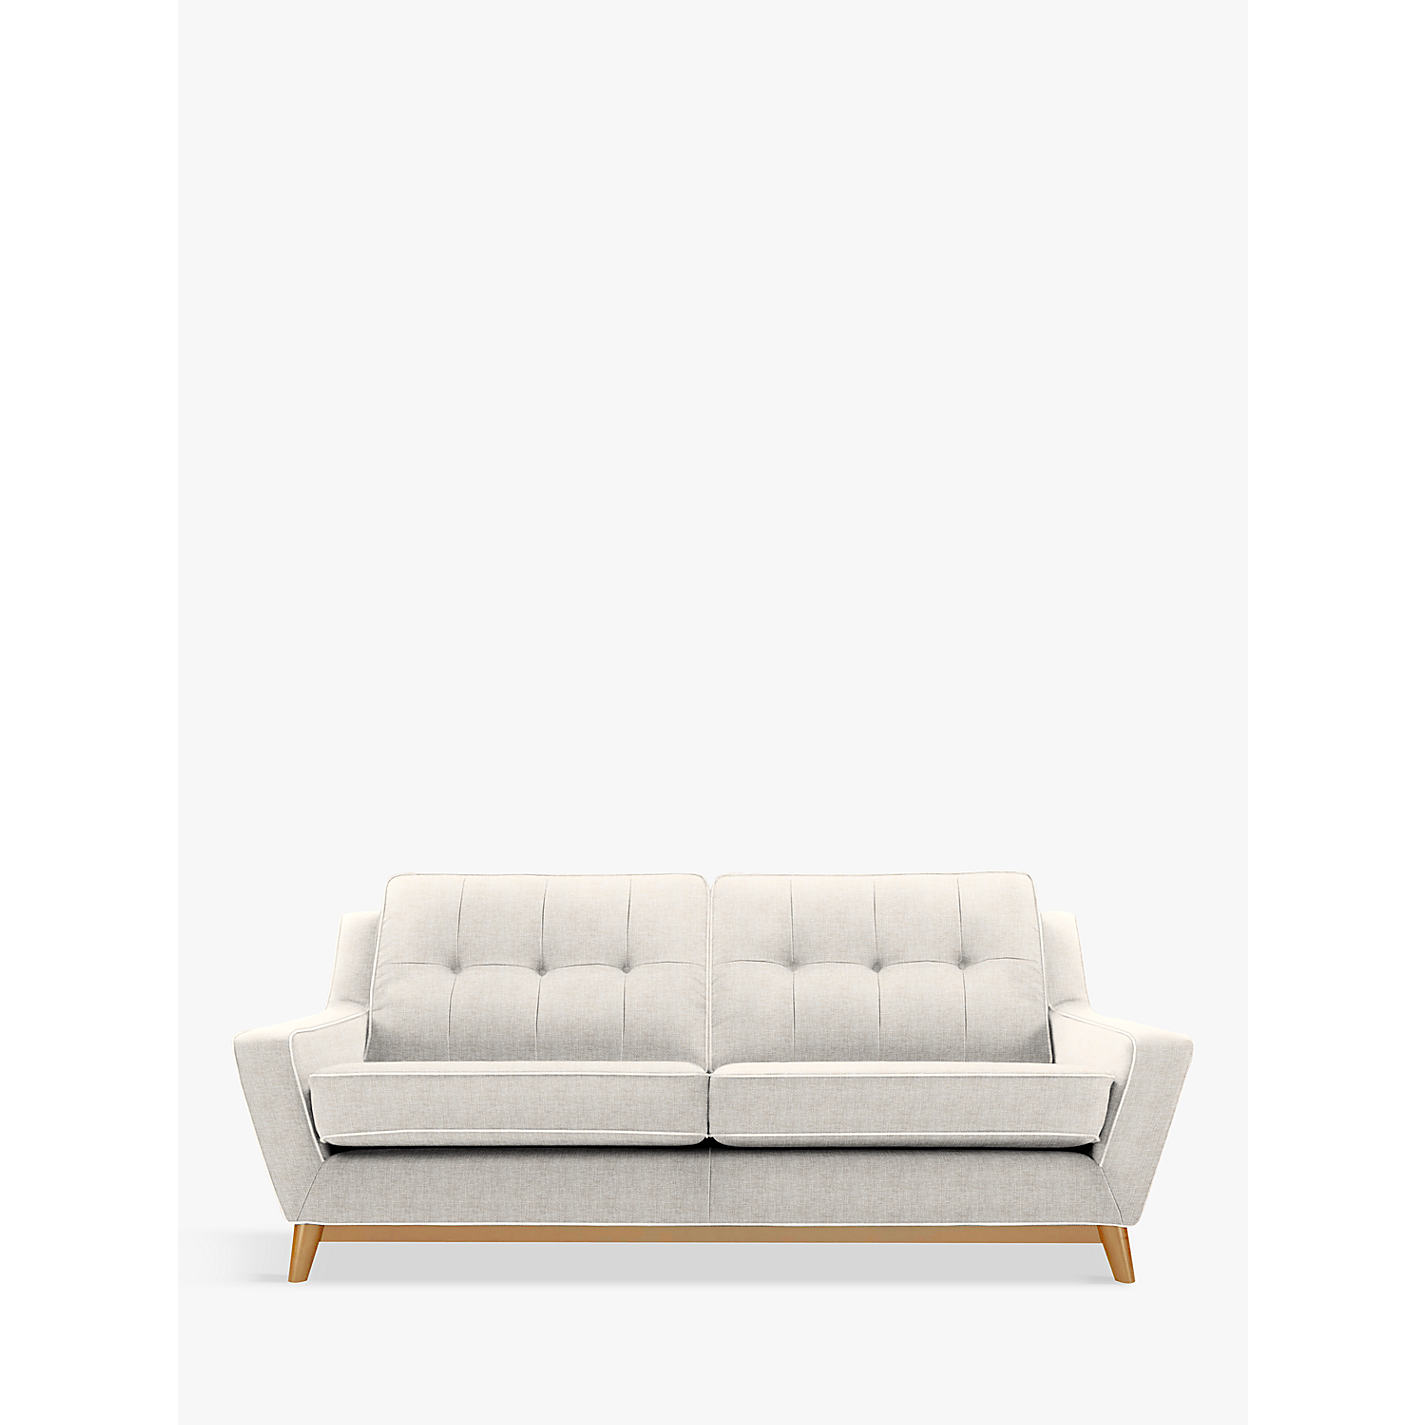 G Plan Vintage The Fifty Three Large 3 Seater Sofa Online At Johnlewis